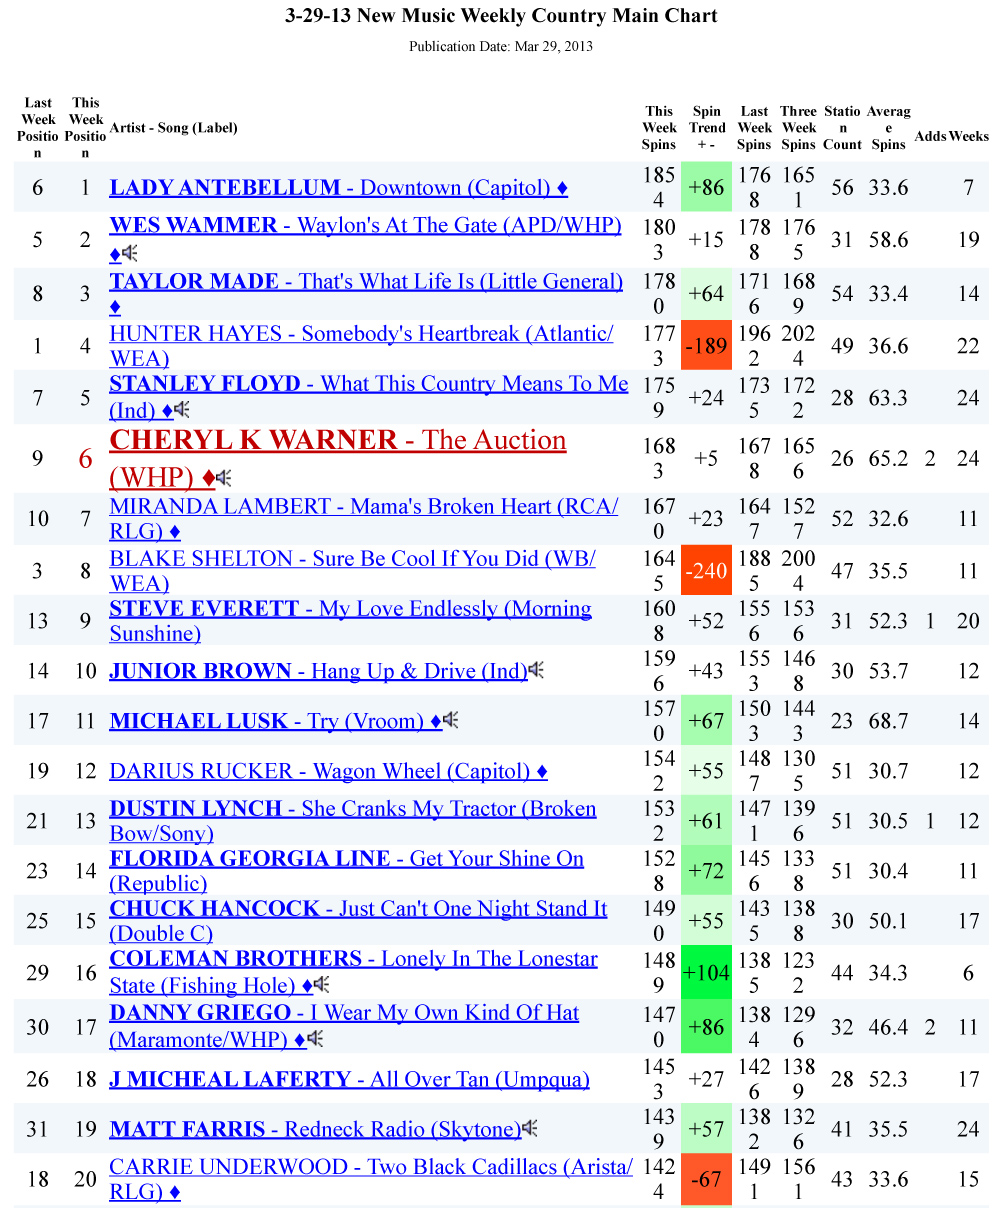 3-29-13 NEW MUSIC WEEKLY COUNTRY MAIN CHART -  # 6 THE AUCTION,